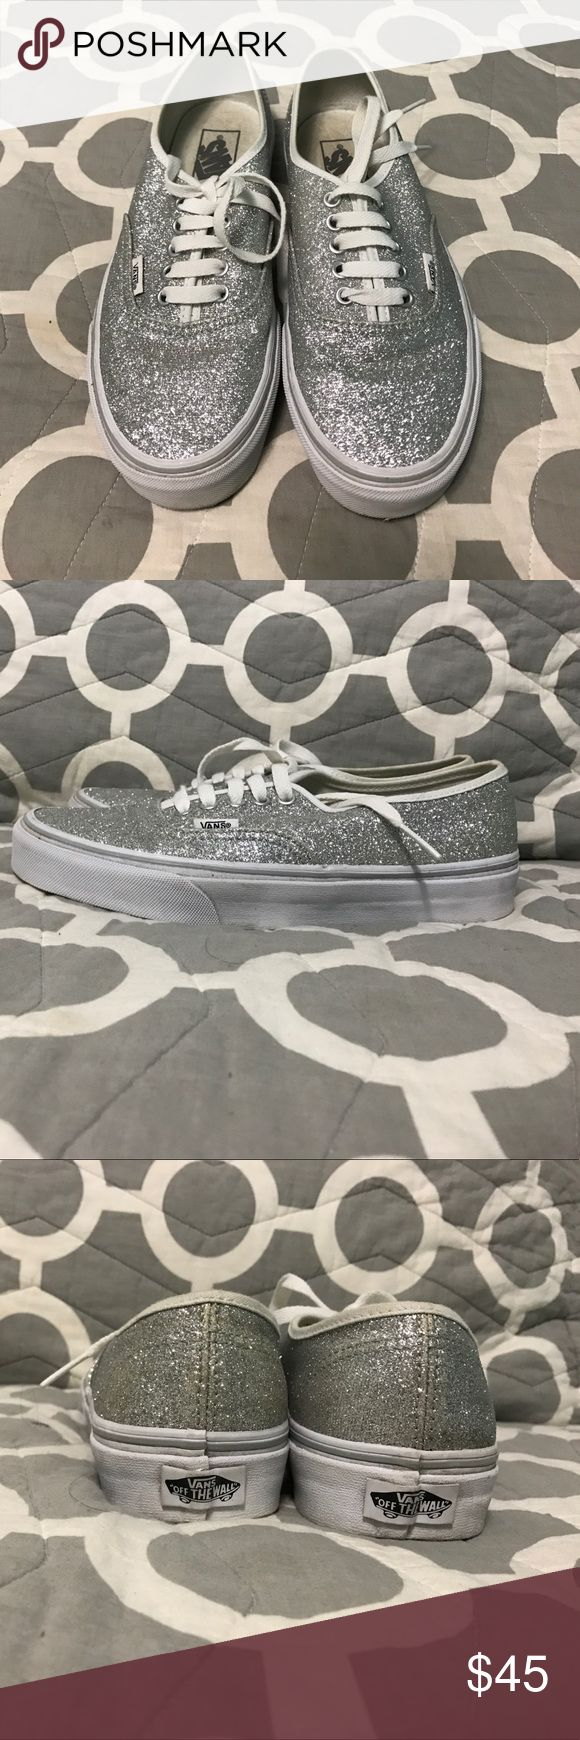 Glitter vans Only worn once. Glitter vans Vans Shoes Sneakers